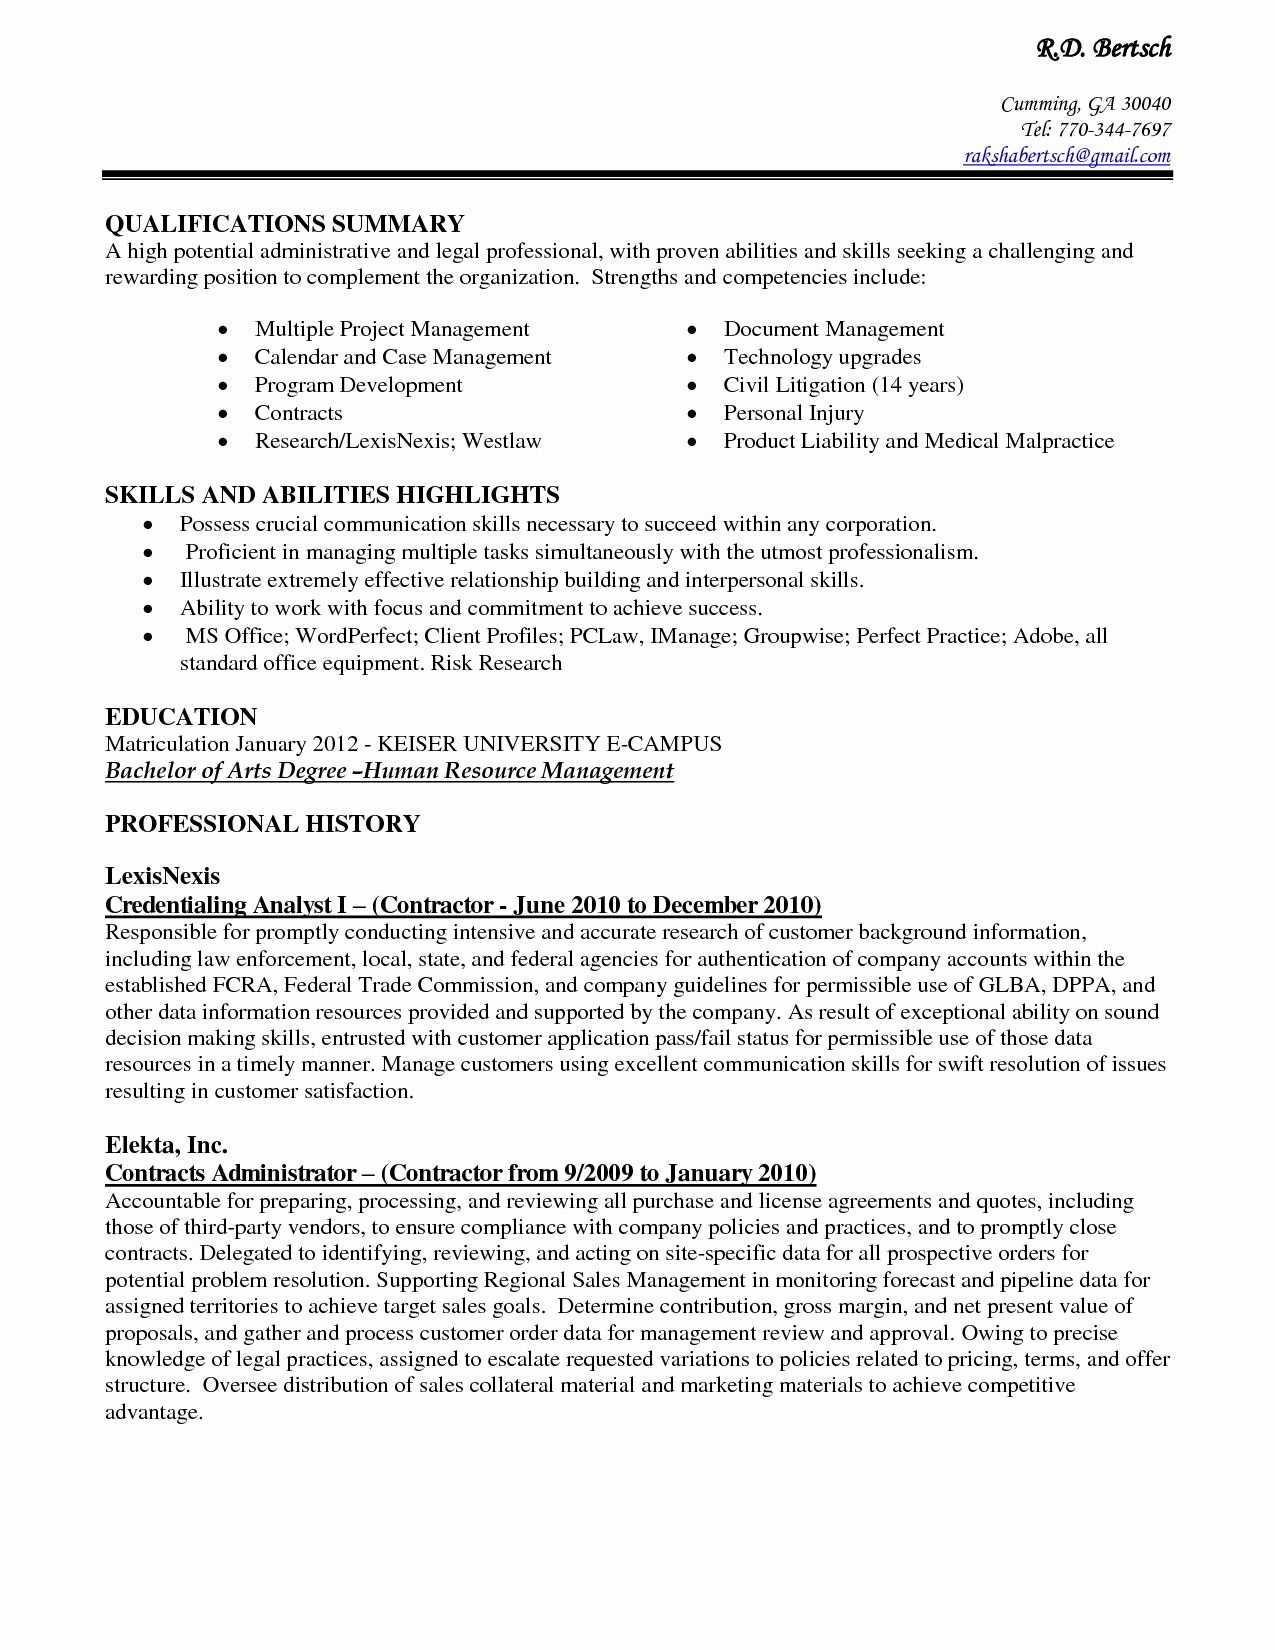 administrative assistant resume summary unique for office examples exam skills medical Resume Office Assistant Resume Summary